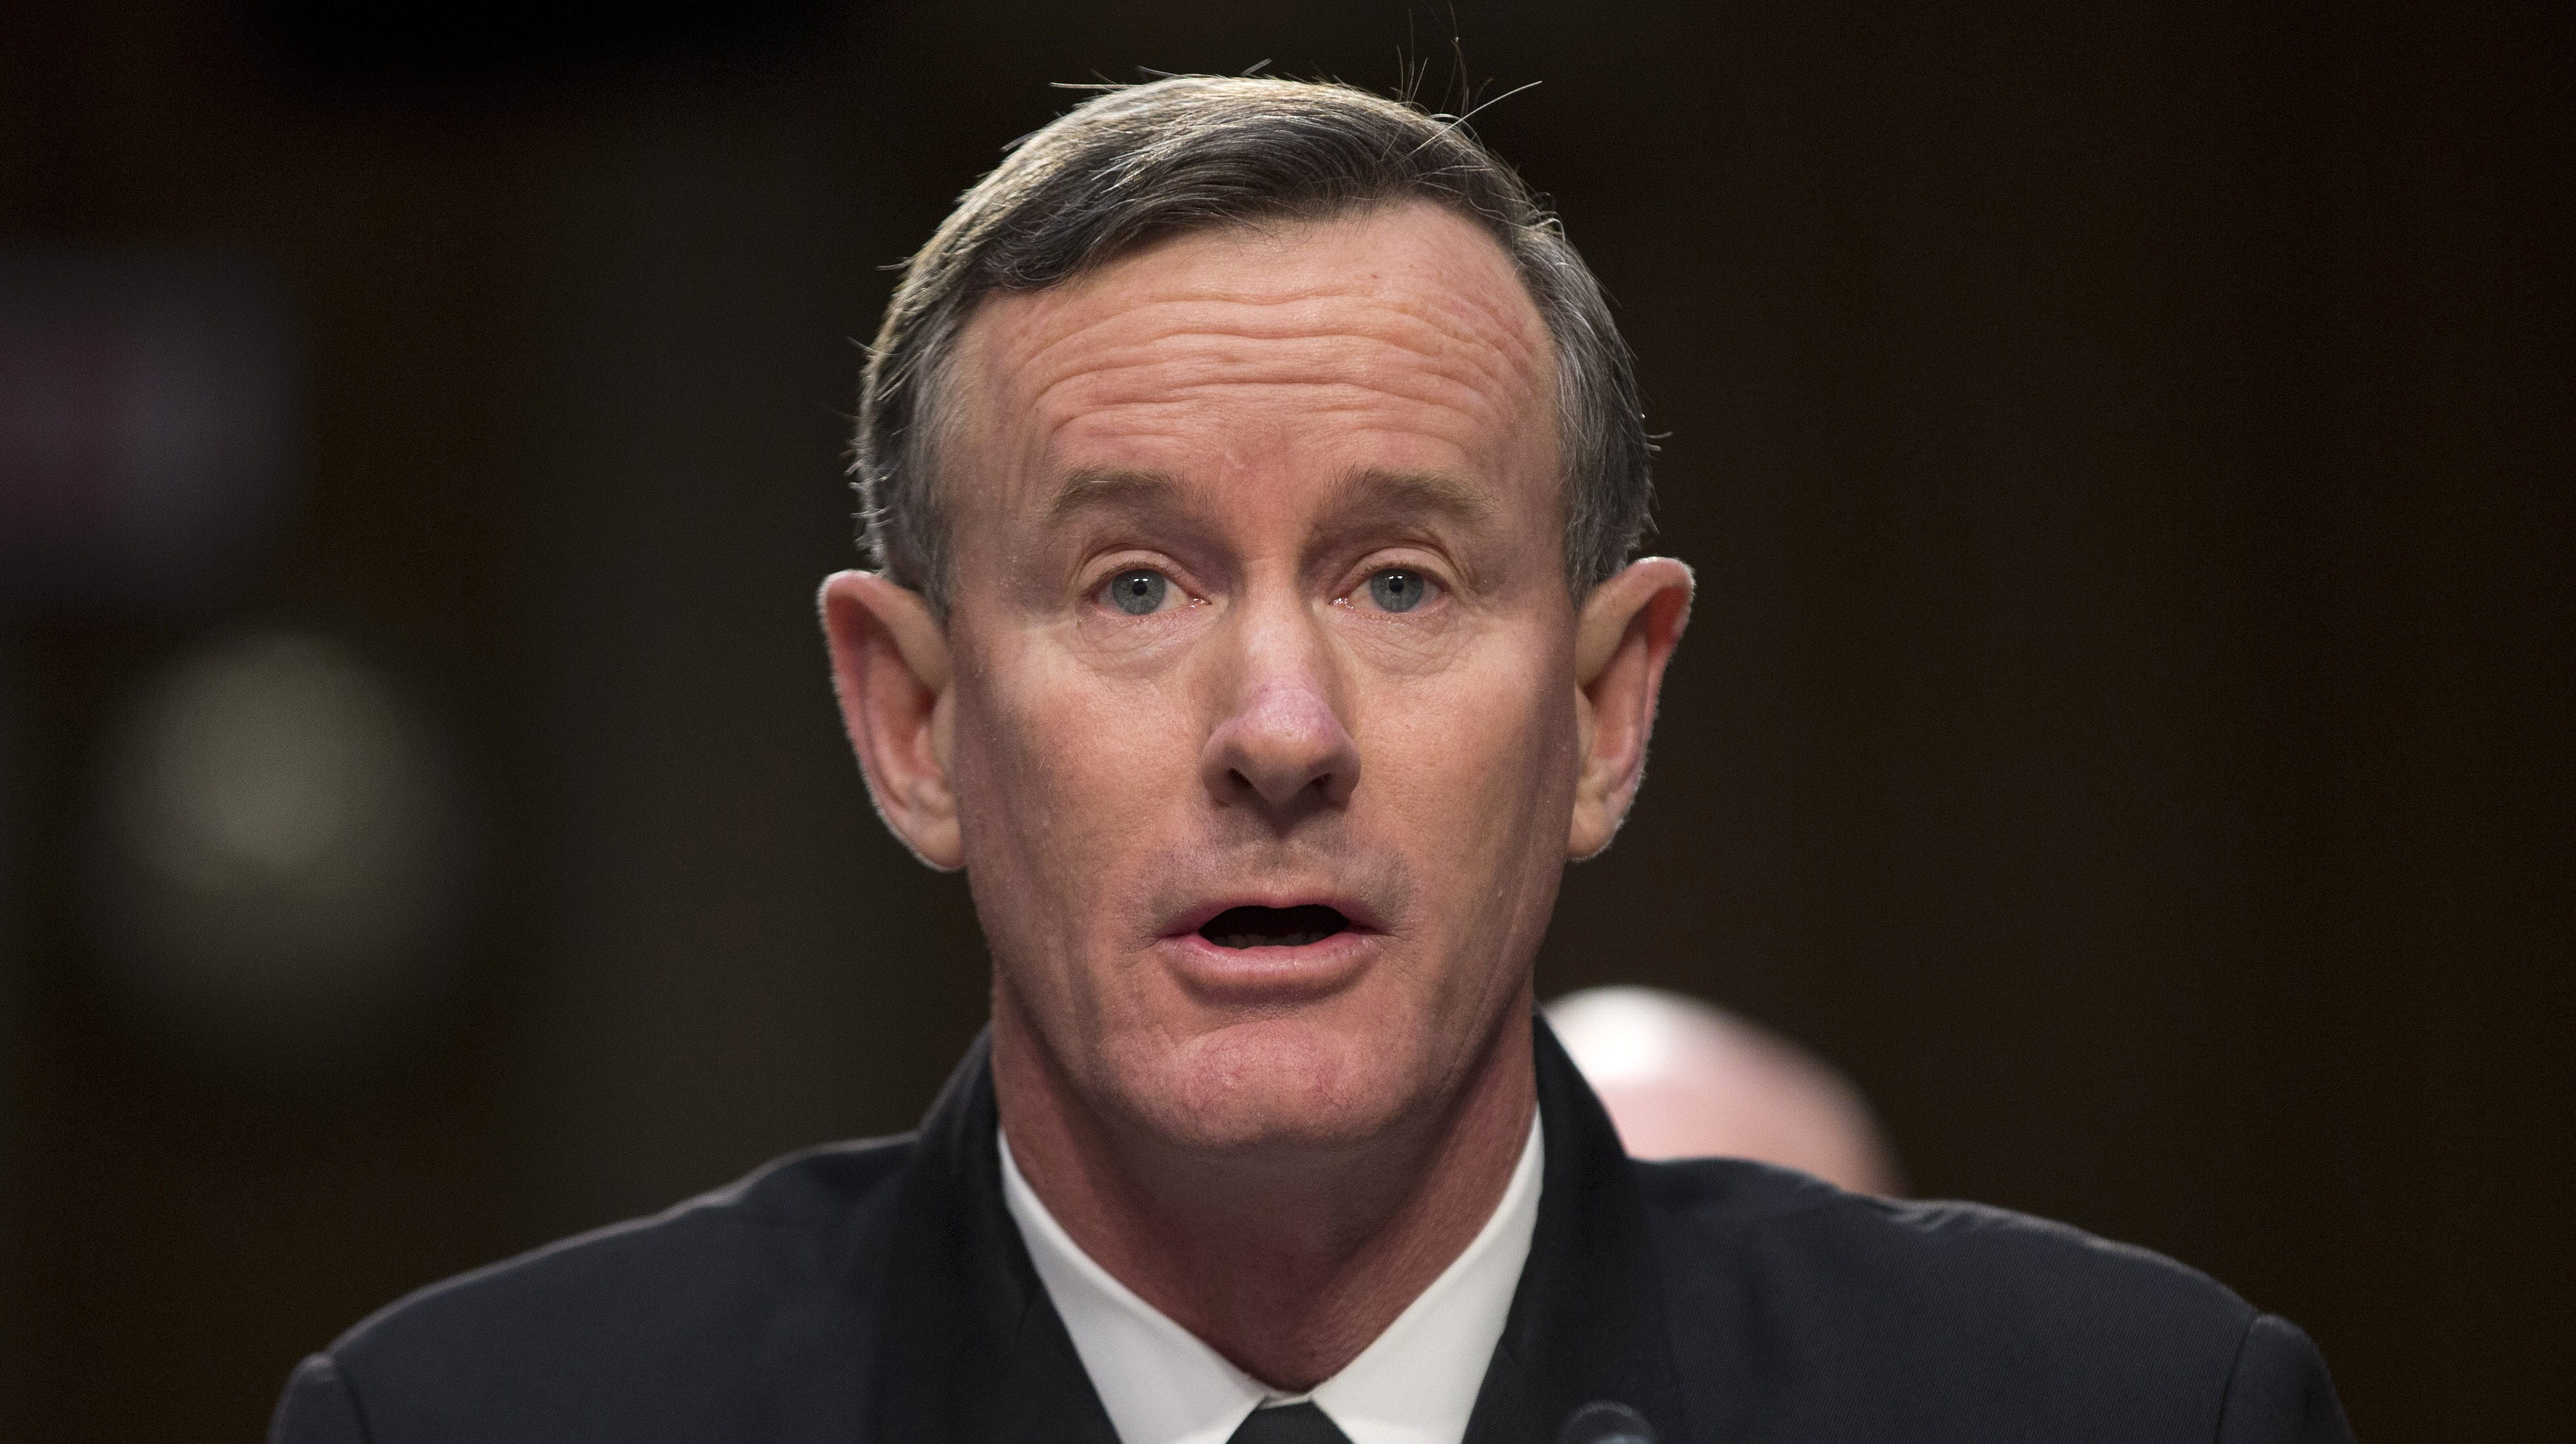 Navy Adm. William McRaven, commander, U.S. Special Operations Command, testifies on Capitol Hill in Washington, Tuesday, March 5, 2013, before the Senate Armed Services Committee.